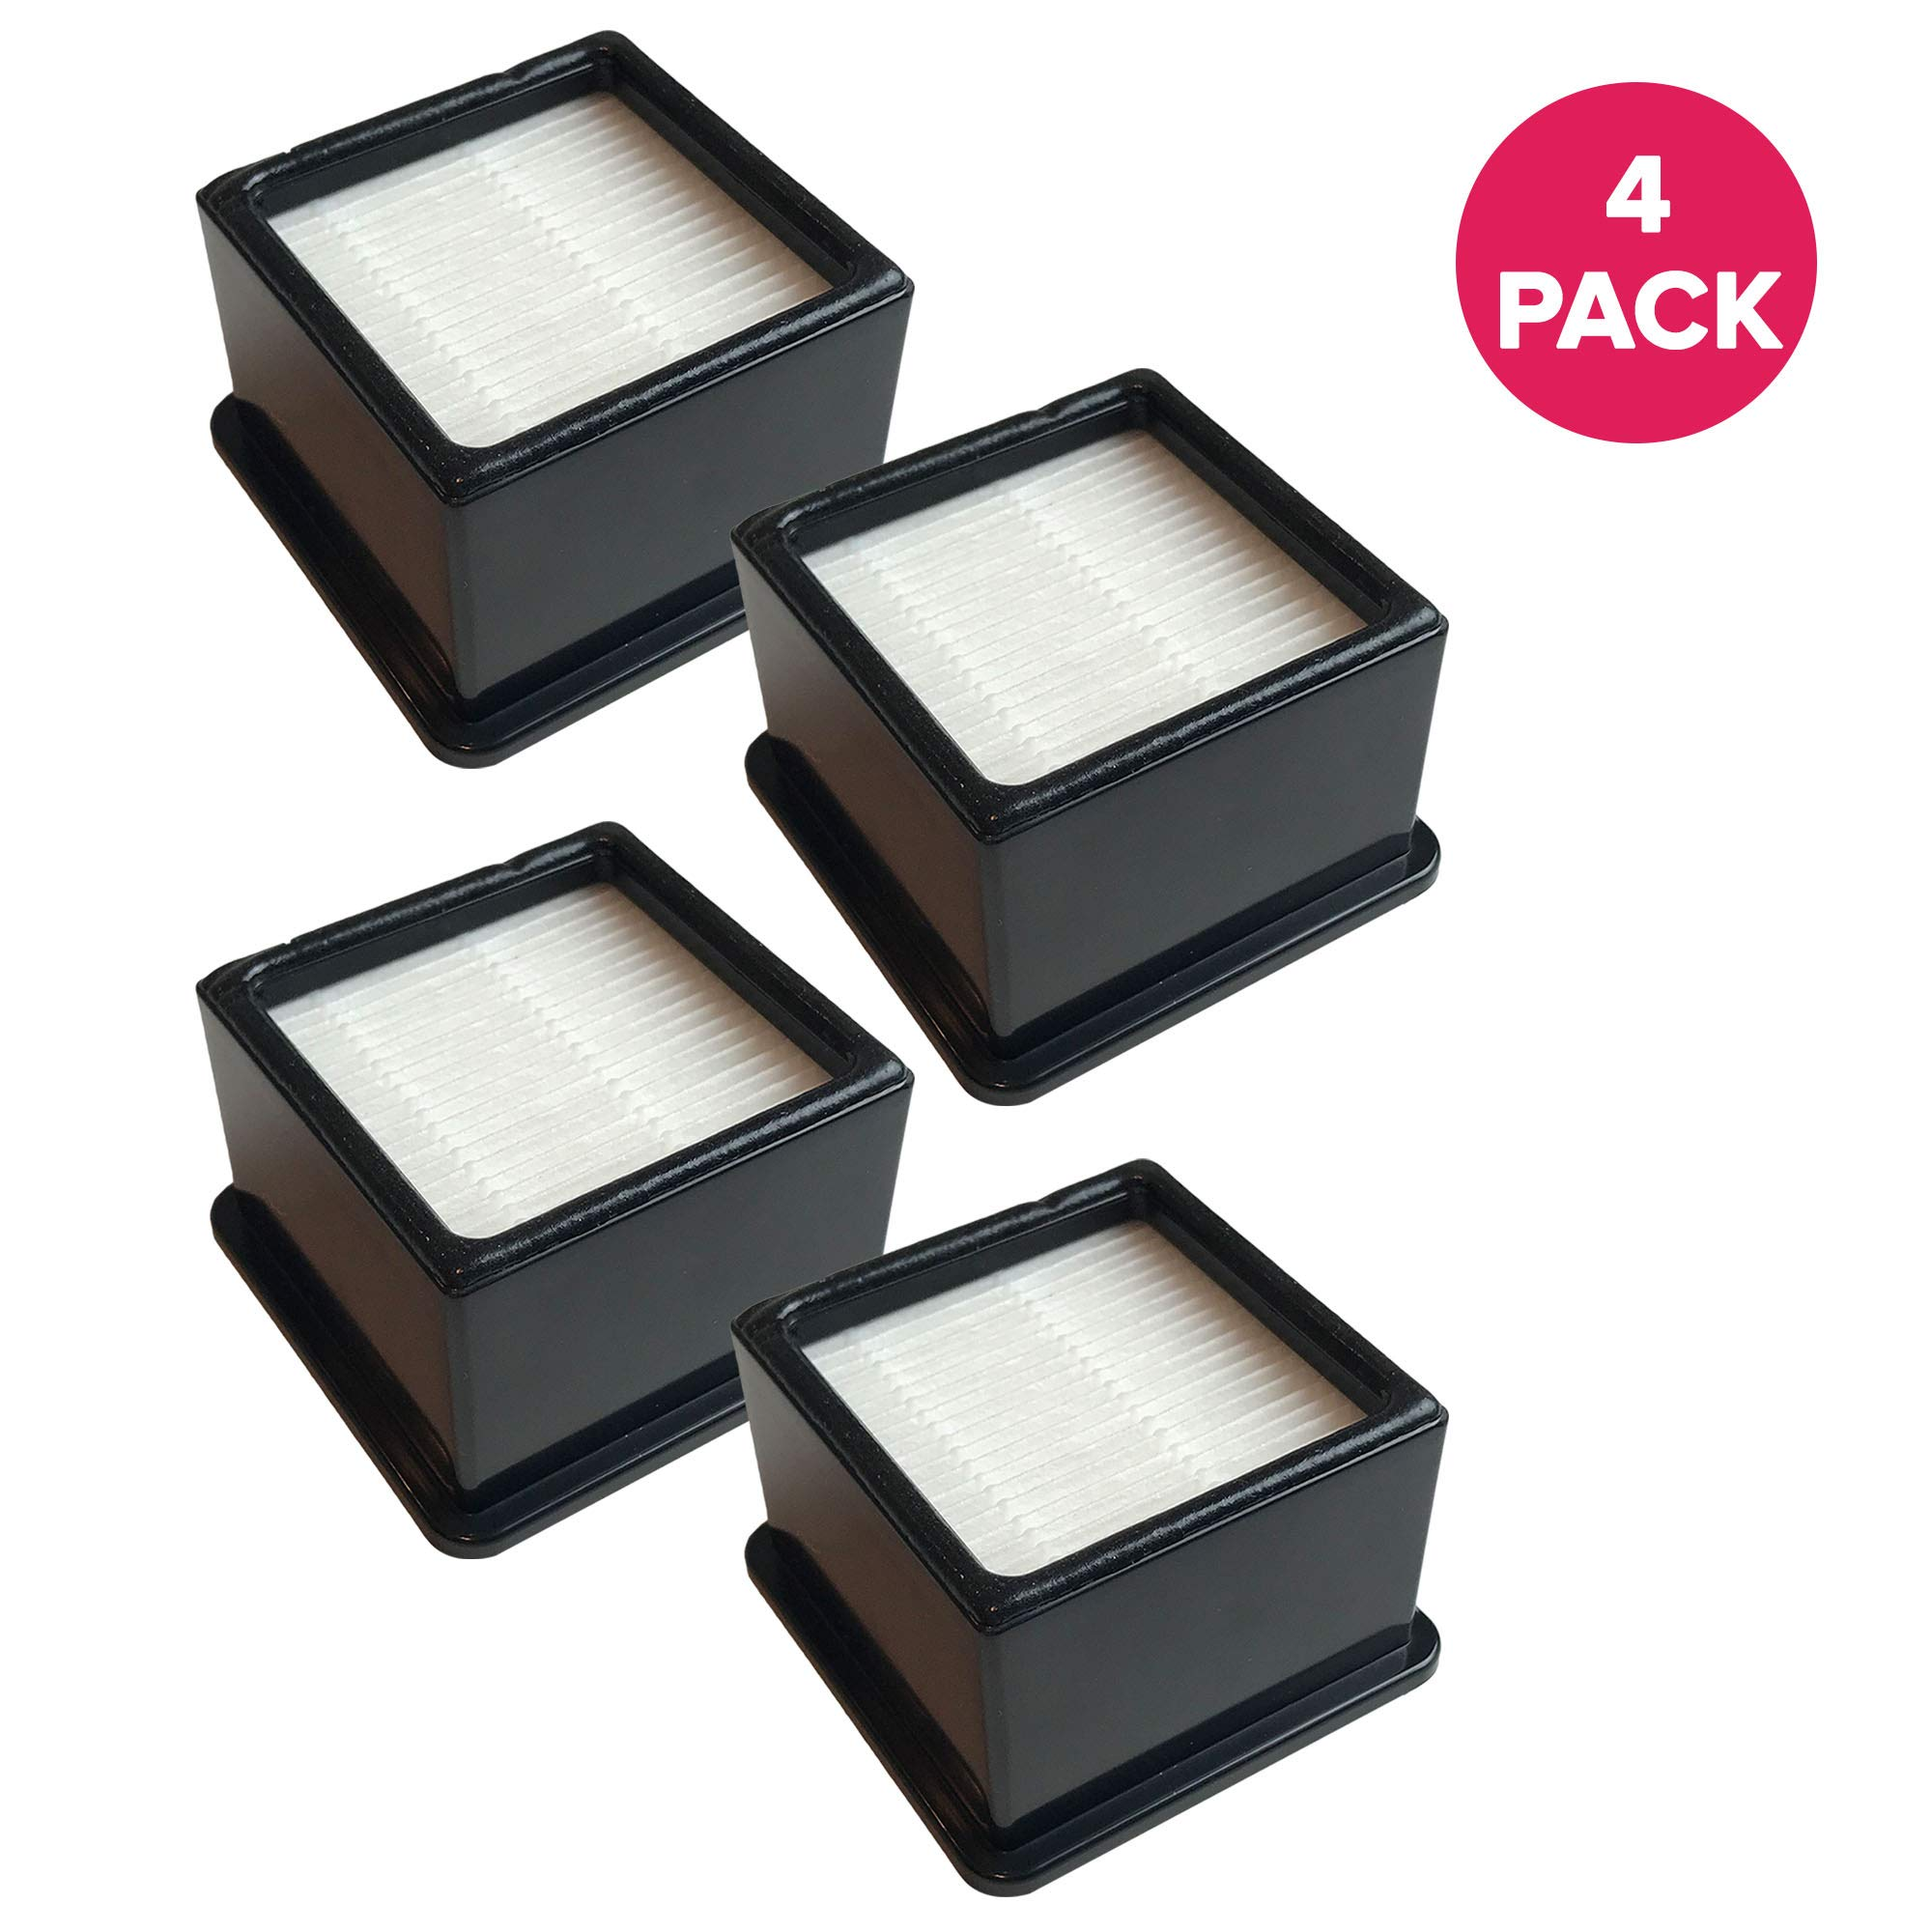 Crucial Vacuum Replacement Air Filters - Compatible with Dirt Devil F-43 Easy Lite Cyclonic Bagless Foam Vacuum Cleaner Filter - HEPA Style - Replace Parts #F43 2PY1105000 1PY1106000 (4 Pack)